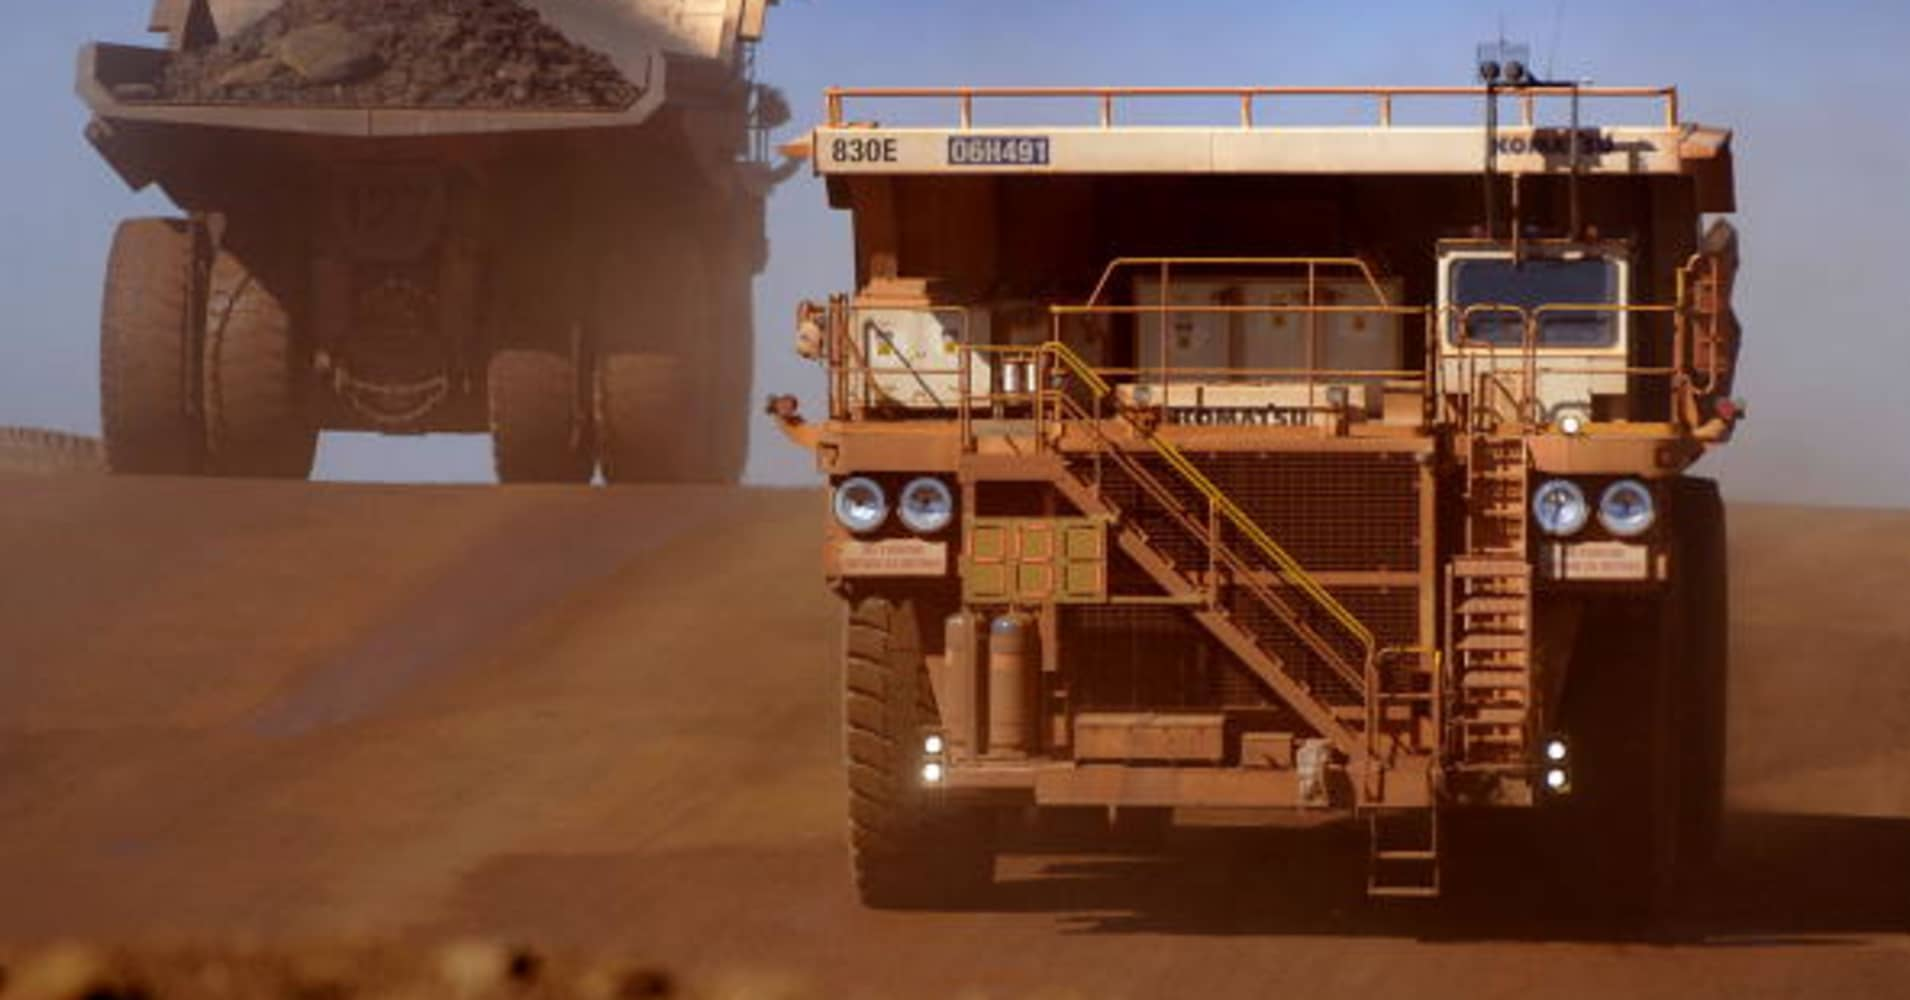 Rising costs, trade tensions weigh on shares of BHP